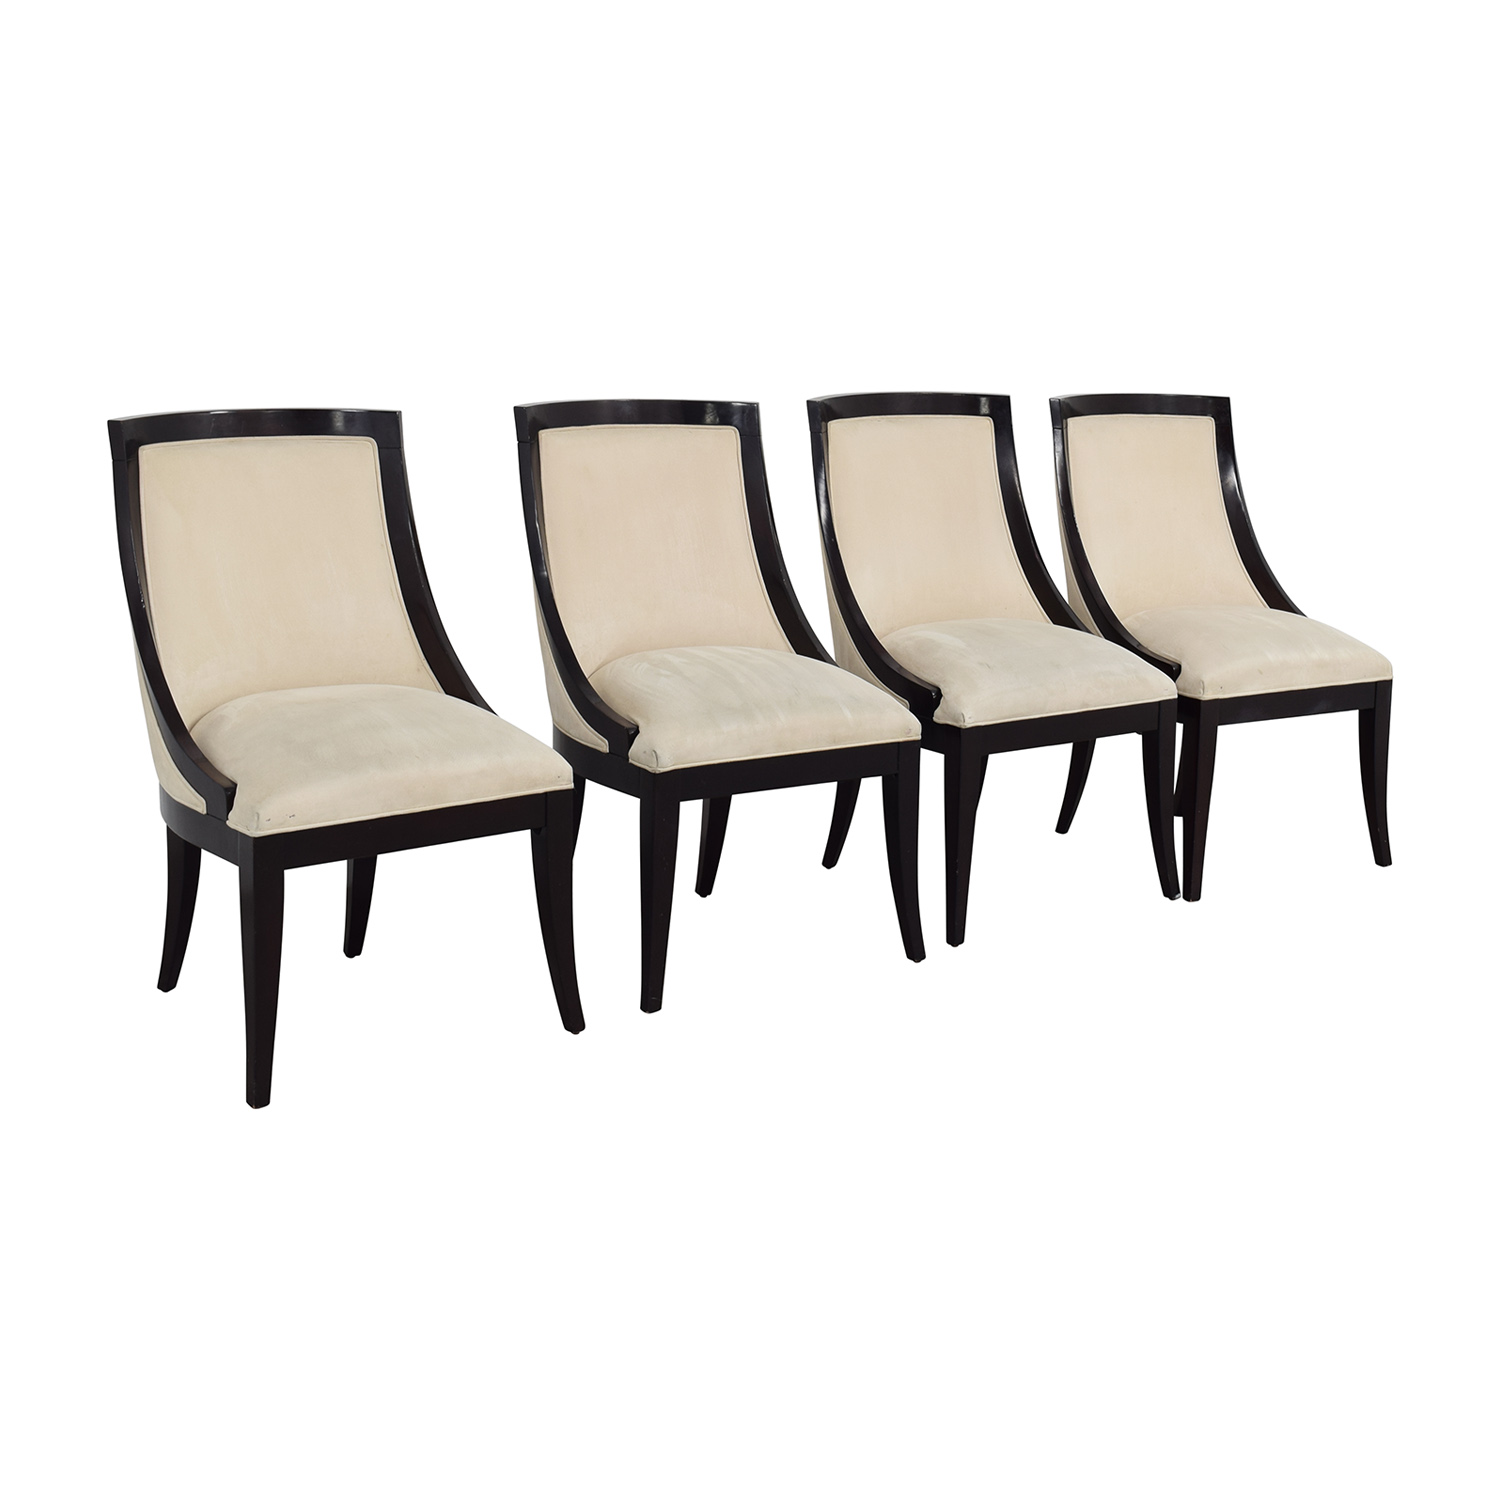 Restoration Hardware Restoration Hardware Cream Upholstered Dining Chairs on sale